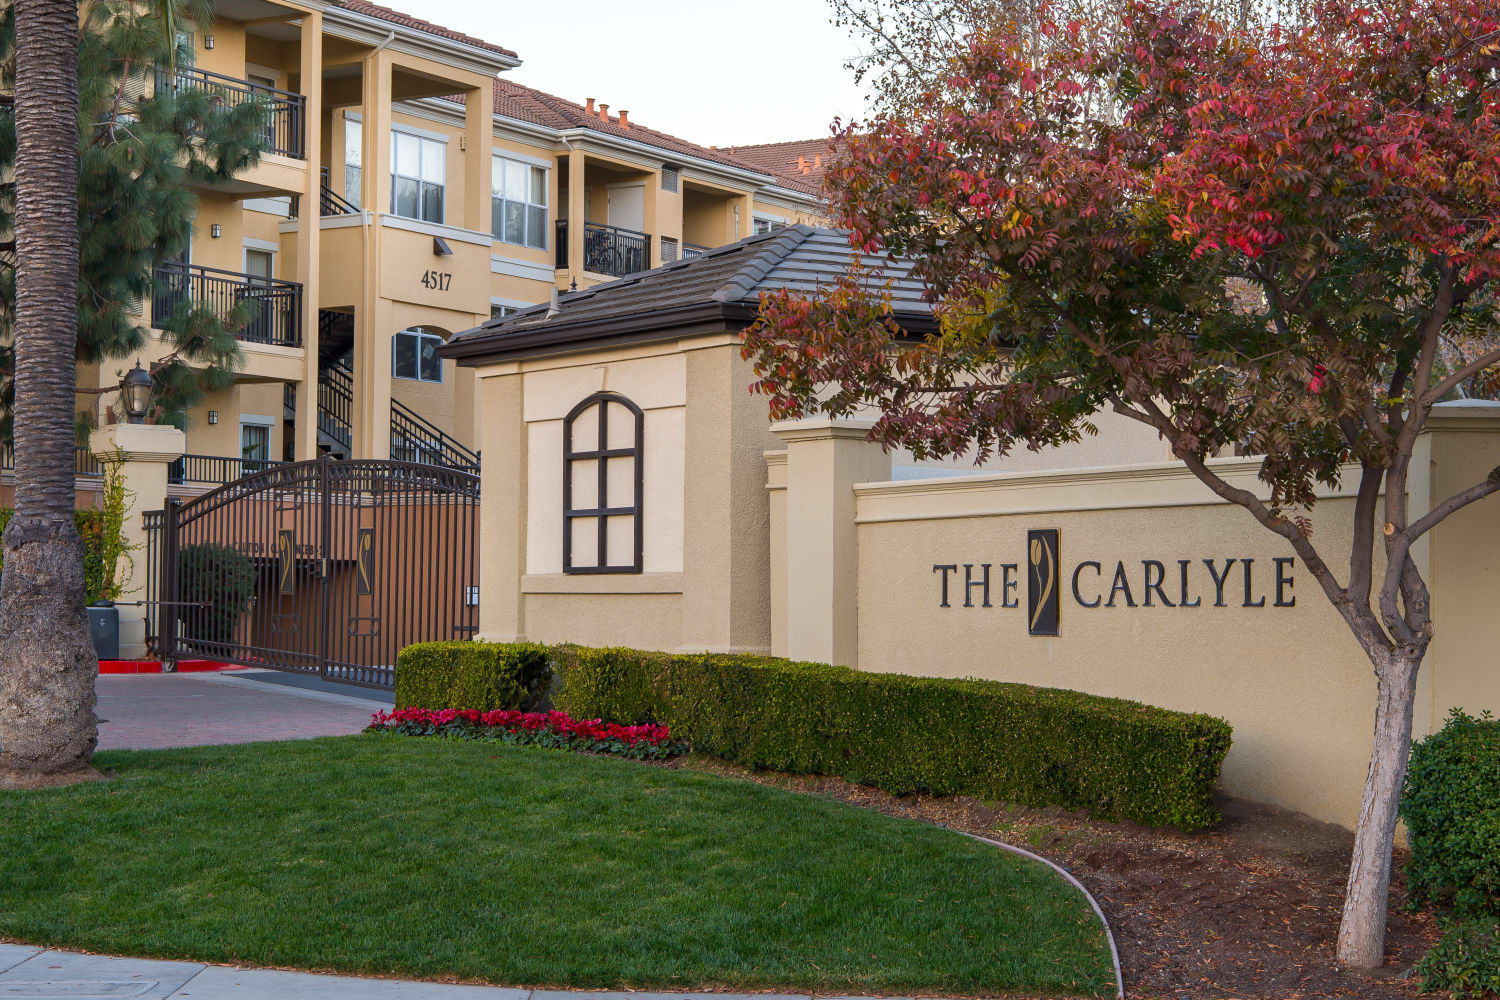 Beautifully landscaped front entrance at The Carlyle in Santa Clara, California